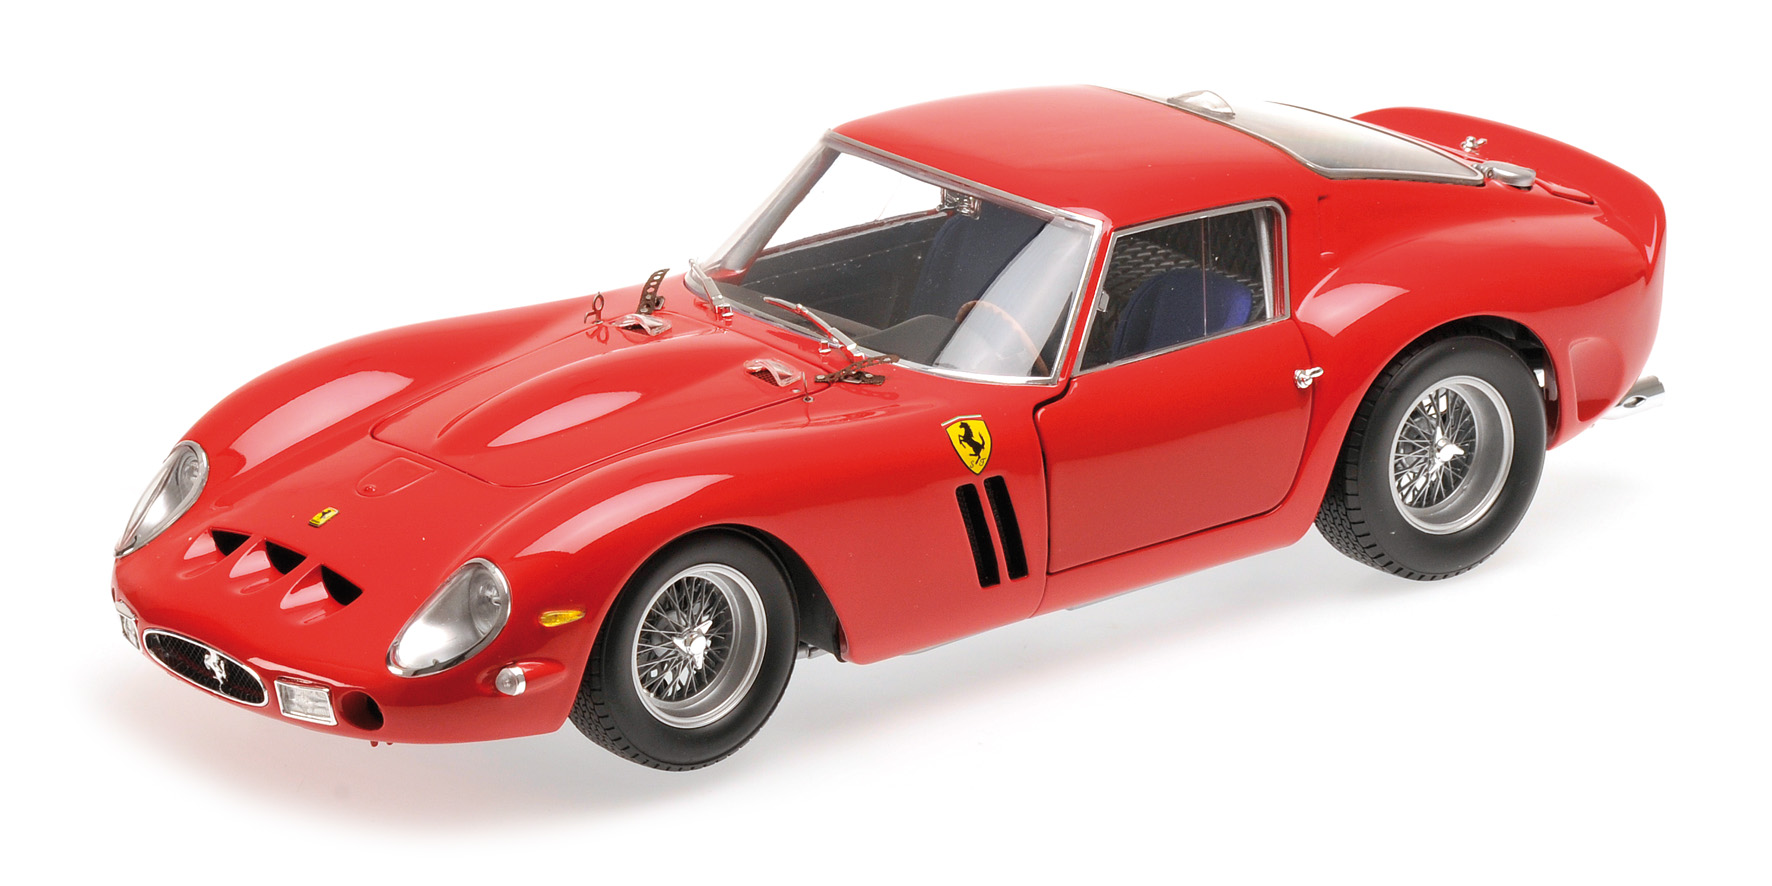 1962 red ferrari 250 gto by minichamps 1 18 scale choice gear. Black Bedroom Furniture Sets. Home Design Ideas